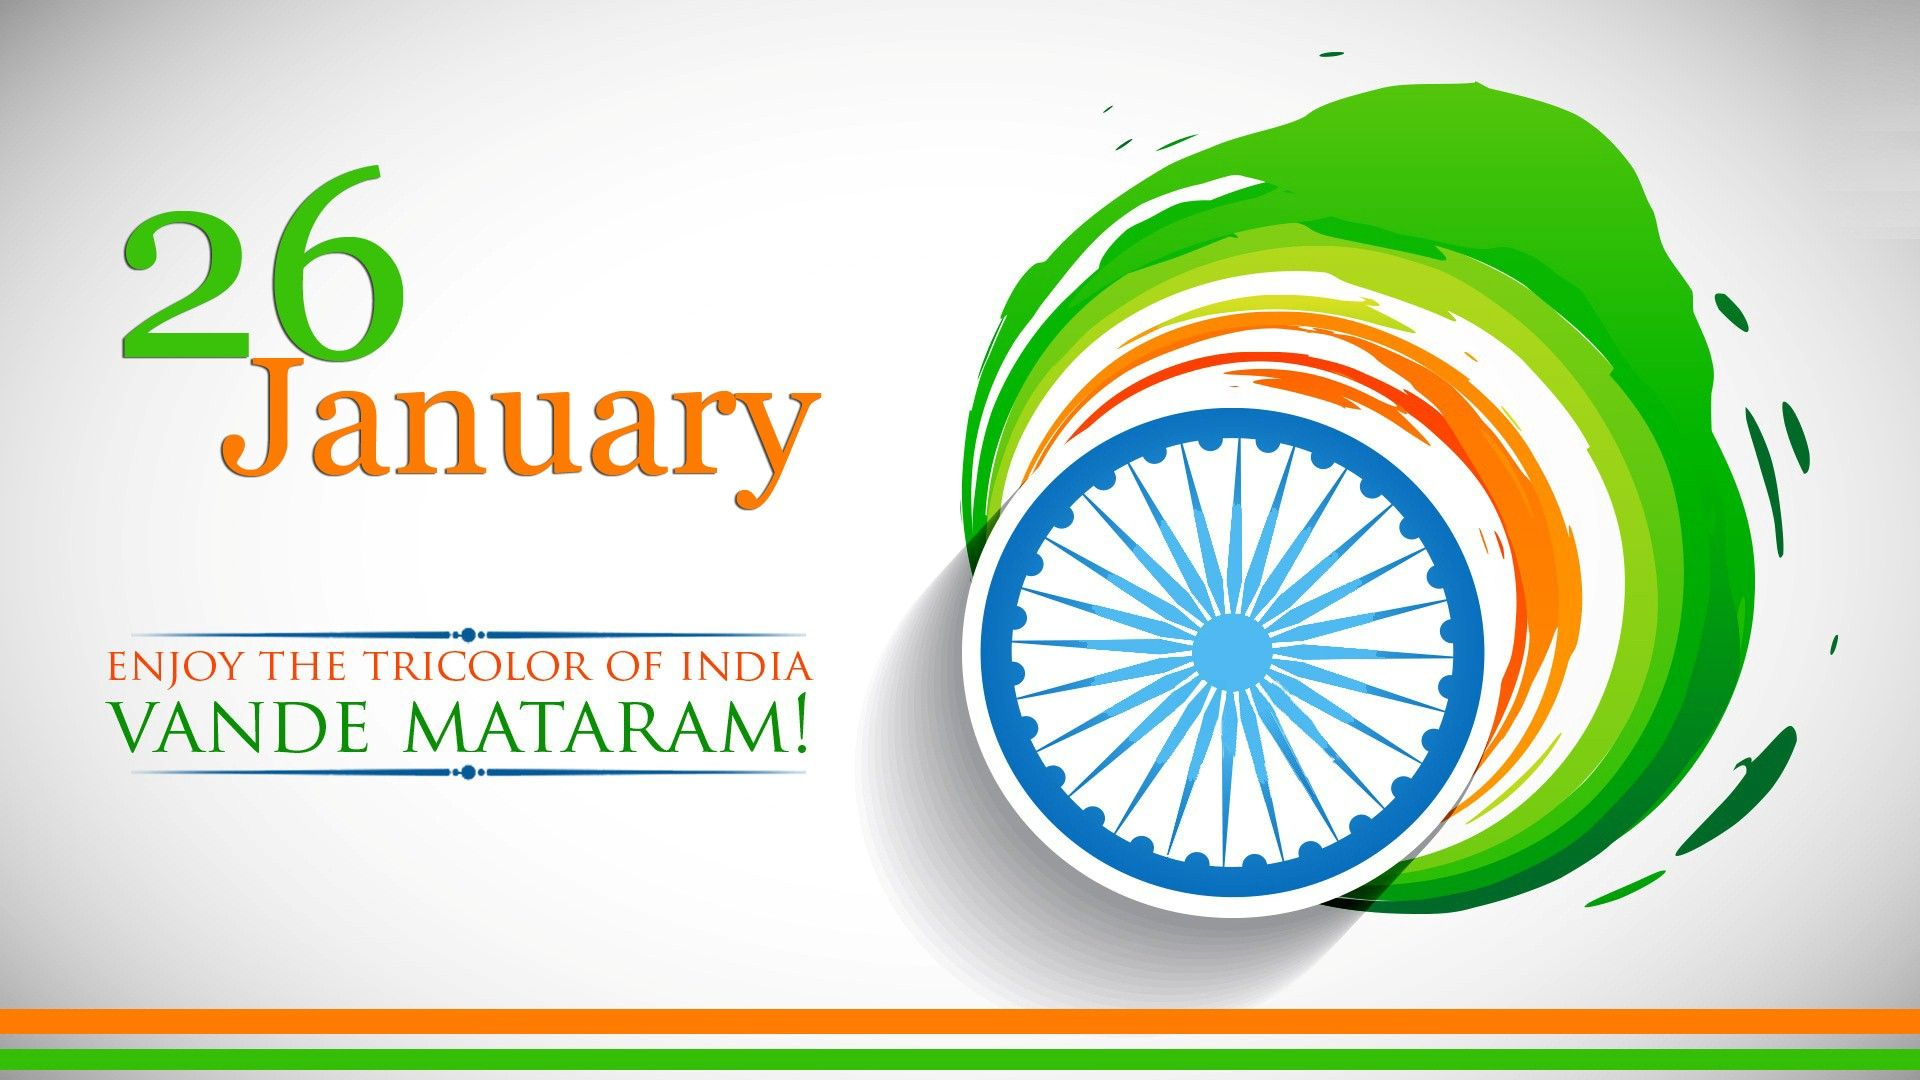 26 January 2019 Republic Day Images Wallpapers 26 January 2019 Facebook Statu Republic Day Message Independence Day Hd Wallpaper Independence Day Wallpaper